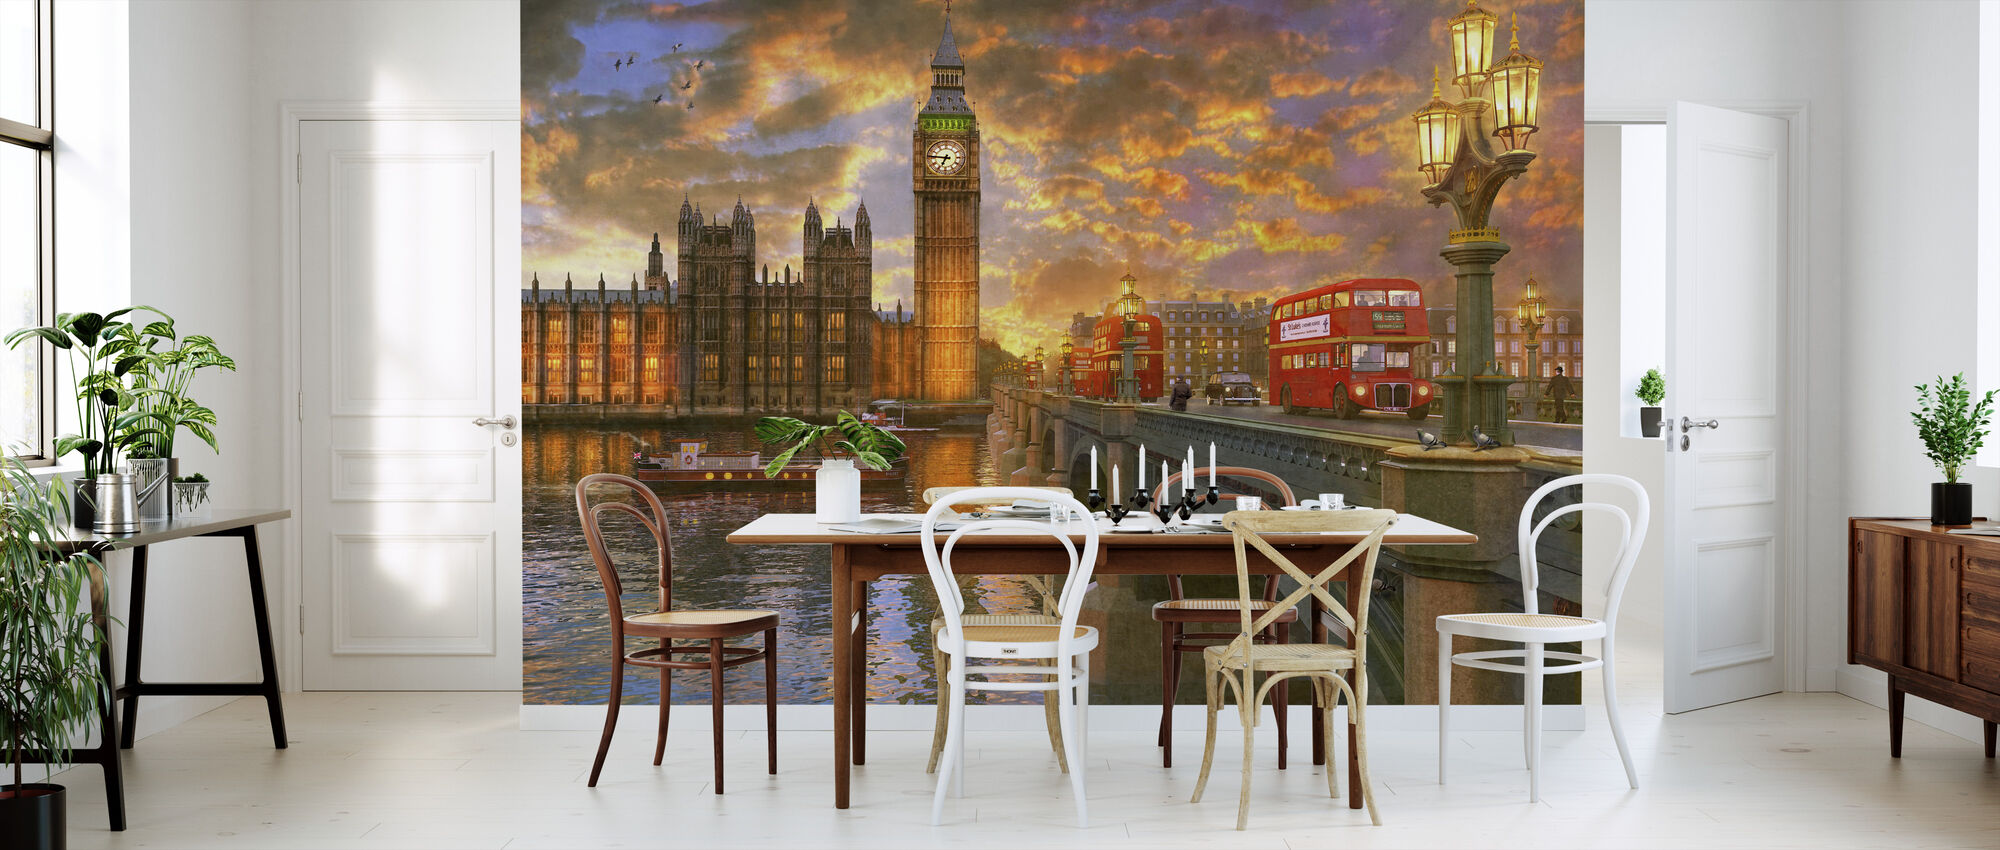 Westminster Sunset - Wallpaper - Kitchen